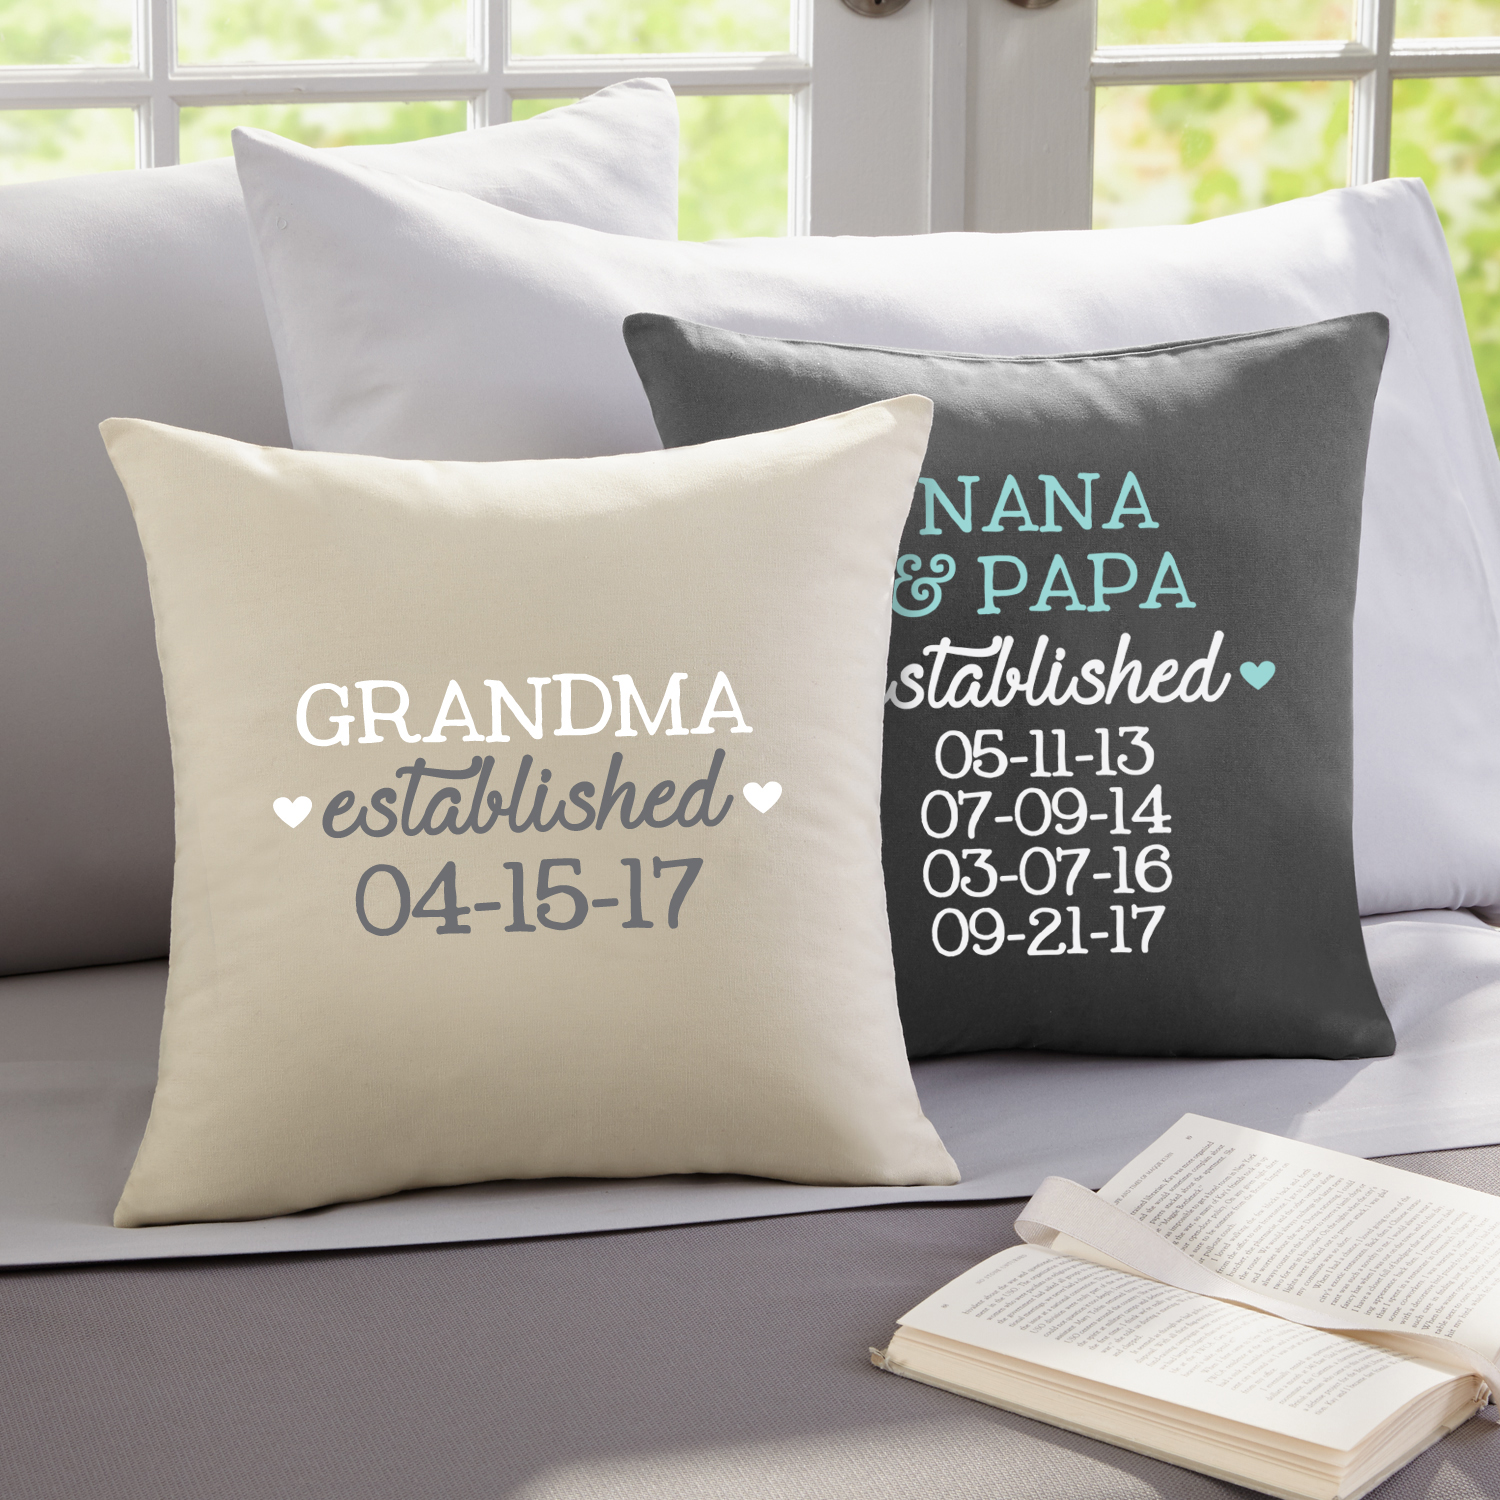 Personalized We Became Grandparents  Throw Pillow - Gray